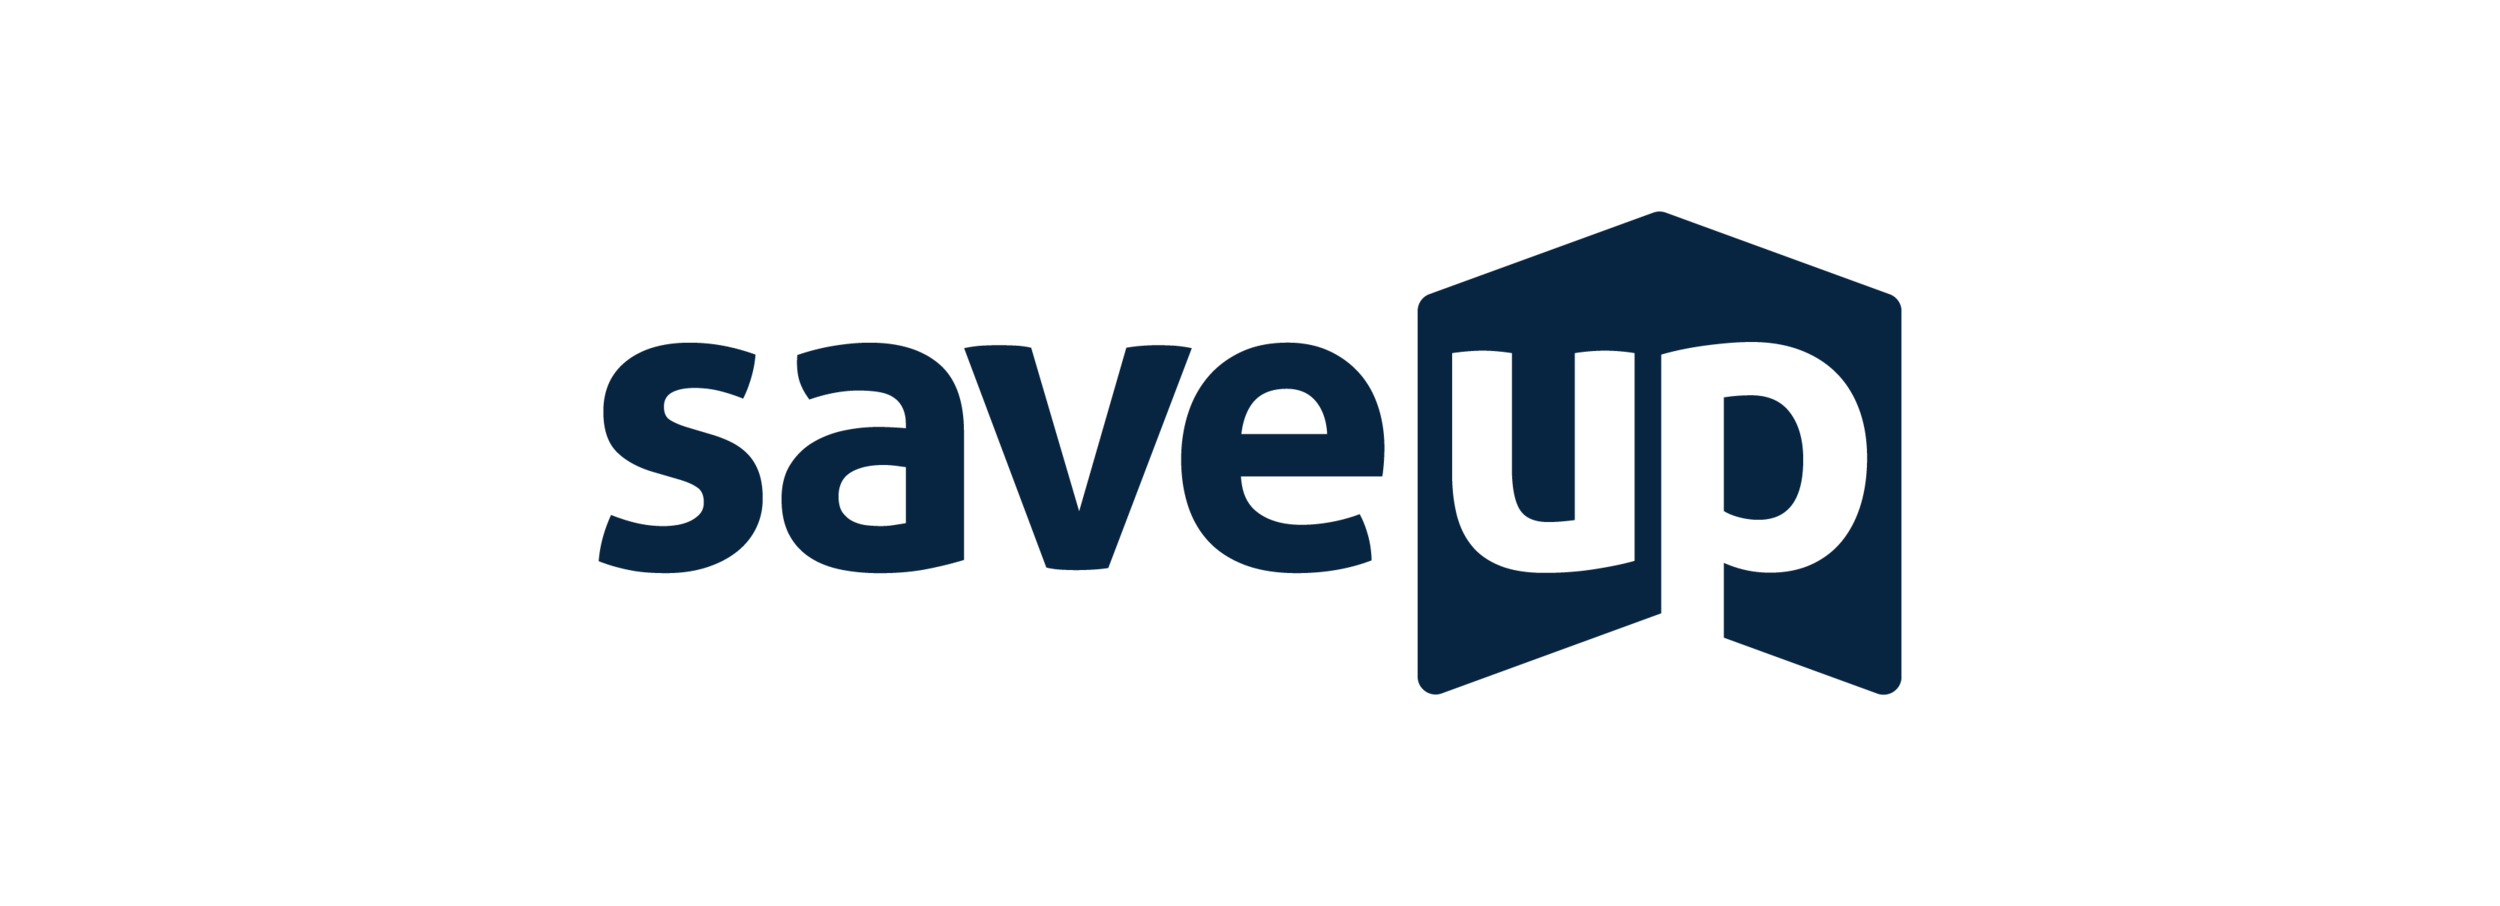 Shane O'Connell Design LLC teams up with SaveUp!